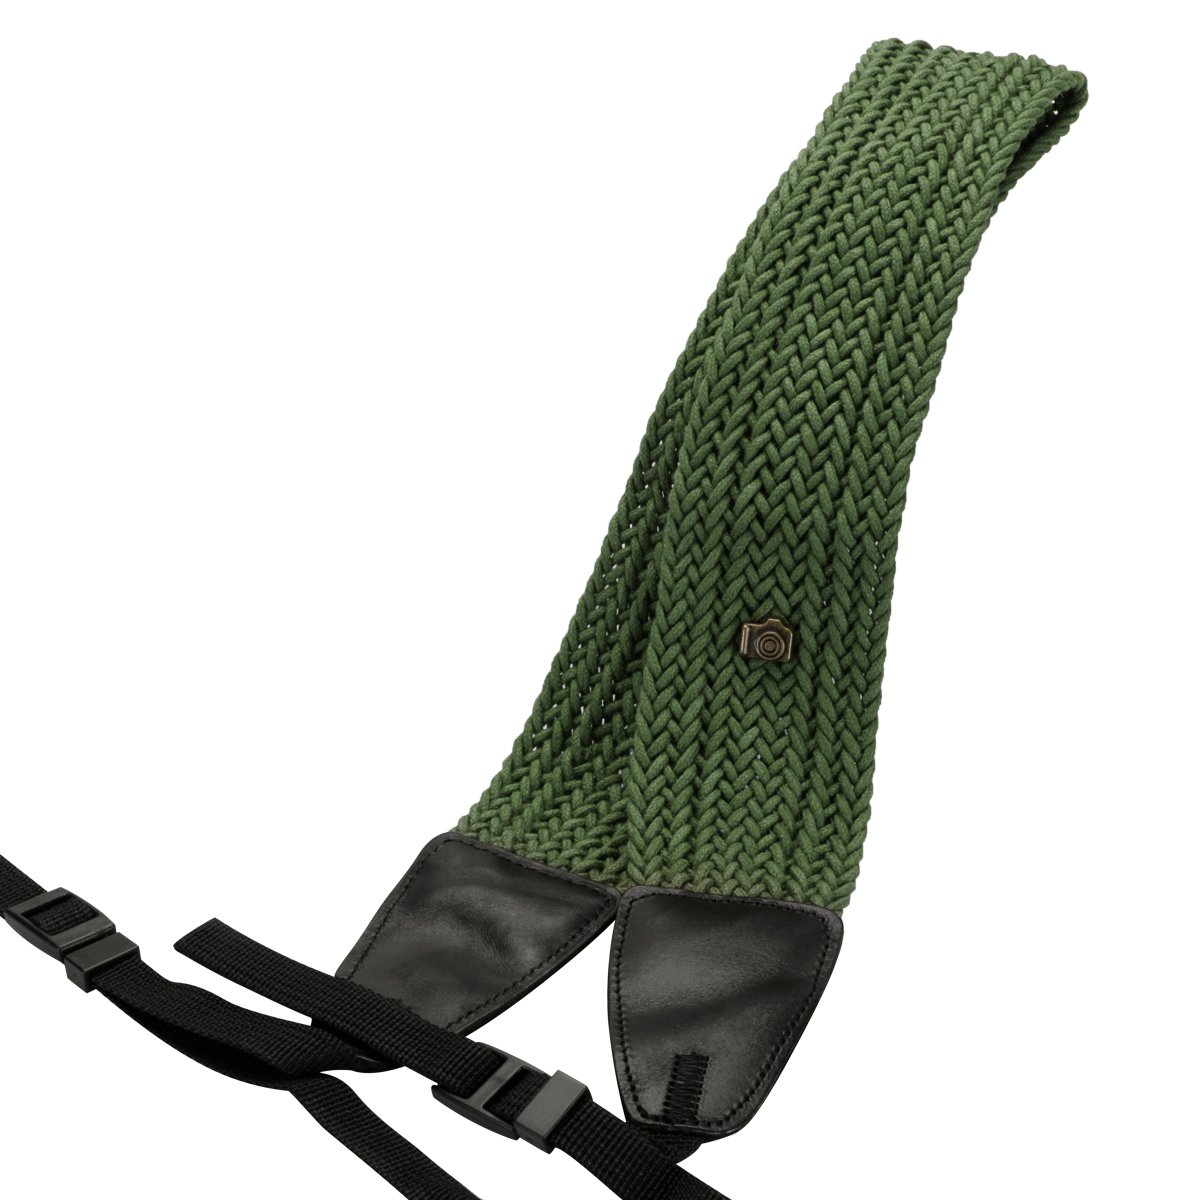 Eggsnow Camera Shoulder Neck Strap Knit Broaden Universal Camera Belt Strap for Women Men All DSLR SLR Nikon Canon Sony Olympus Pentax Samsung-Green